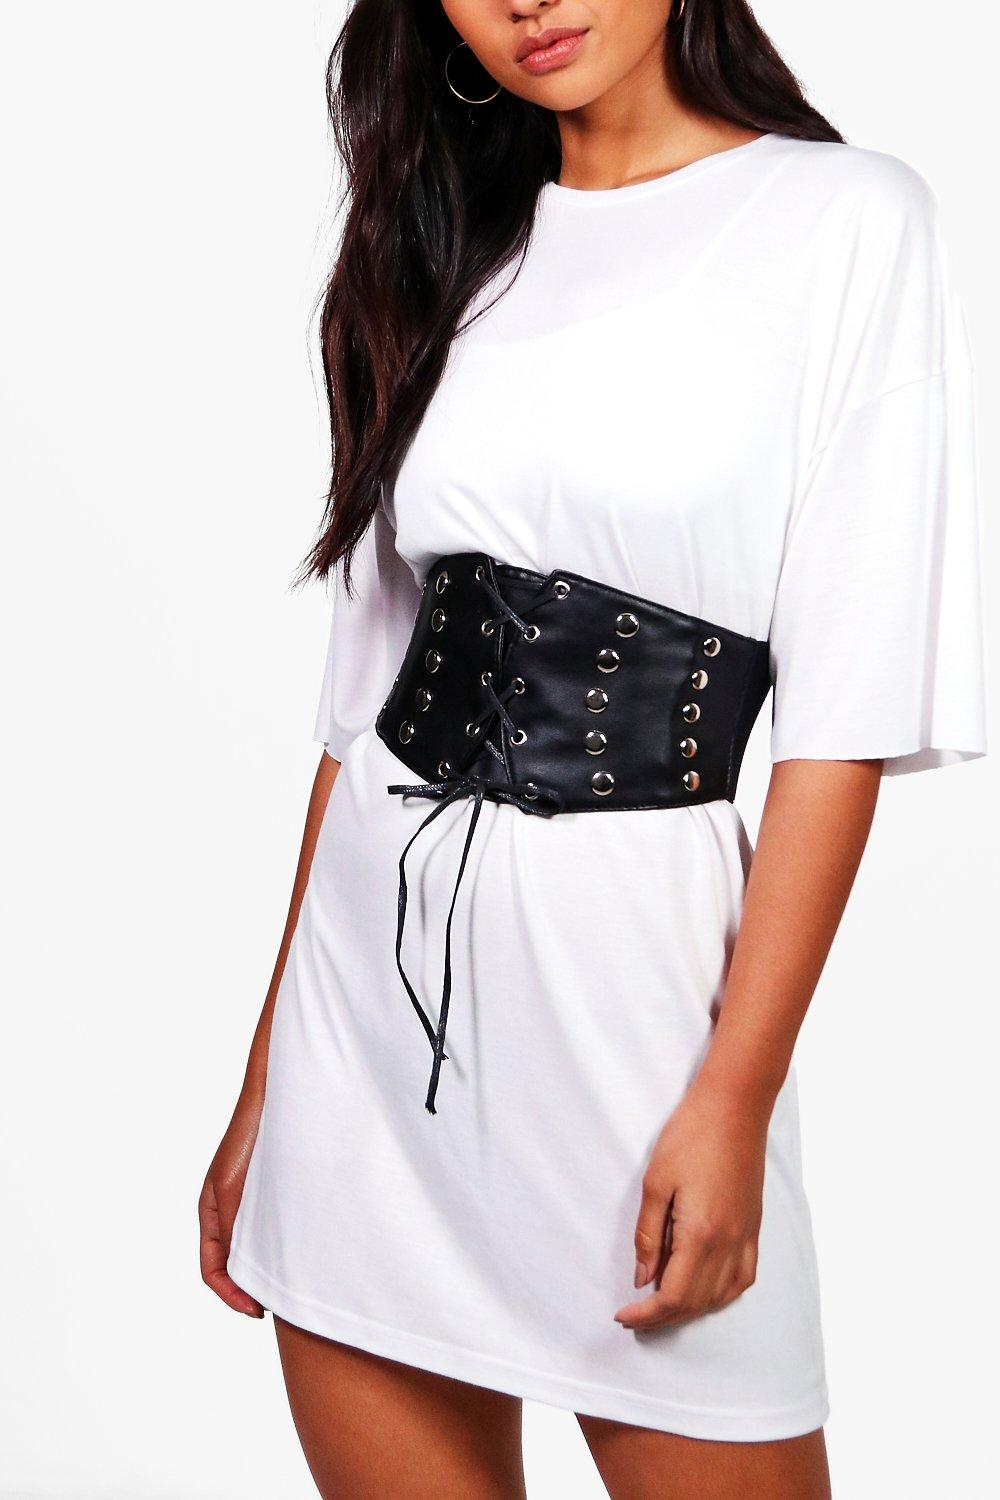 Stud Detailing Lace Up Corset Belt - black - Hanna